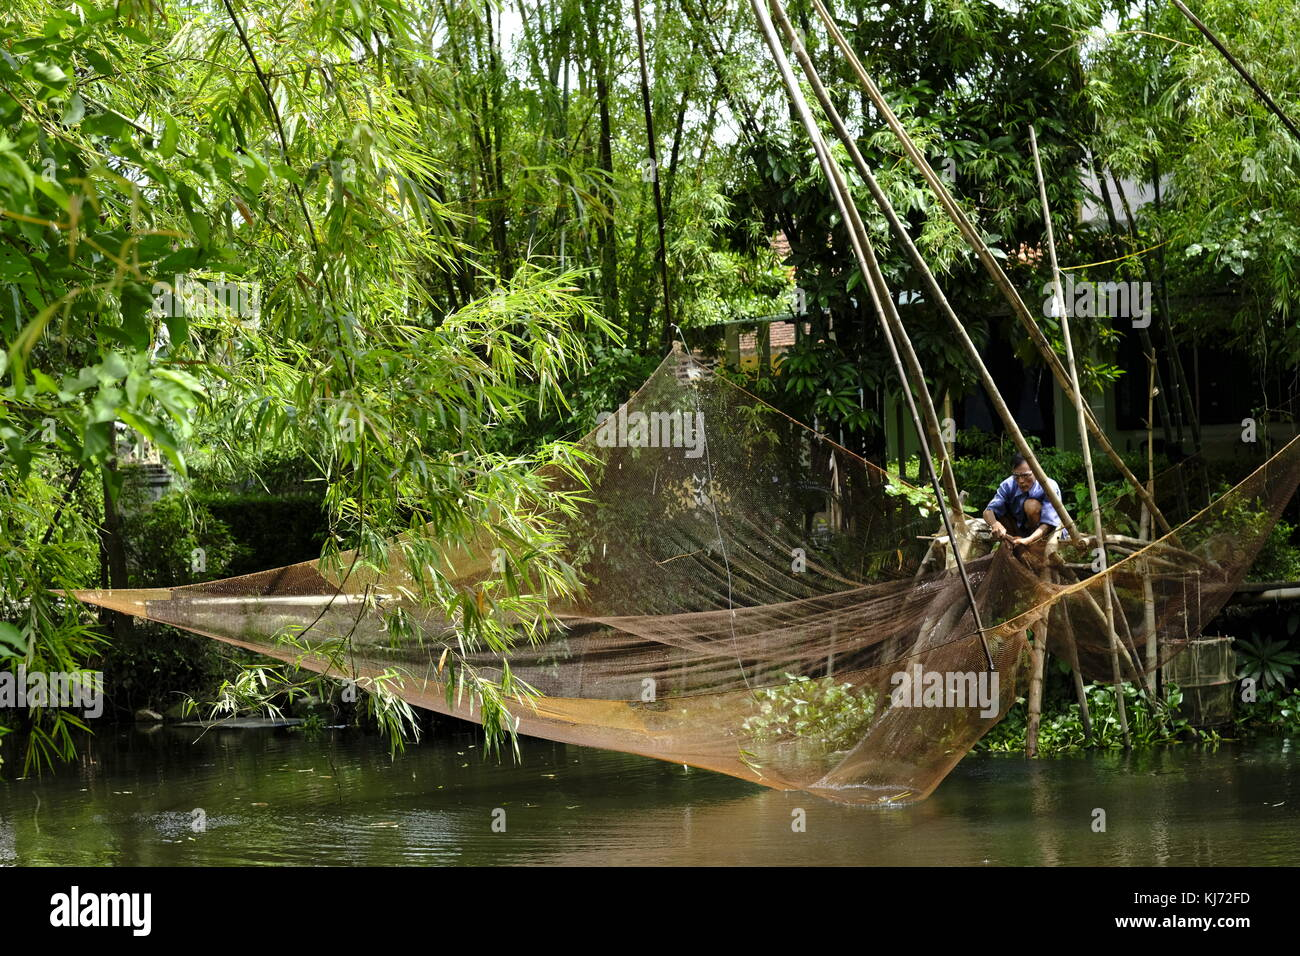 Asian man mending a lift fishing net next to a river in Vietnam - Stock Image